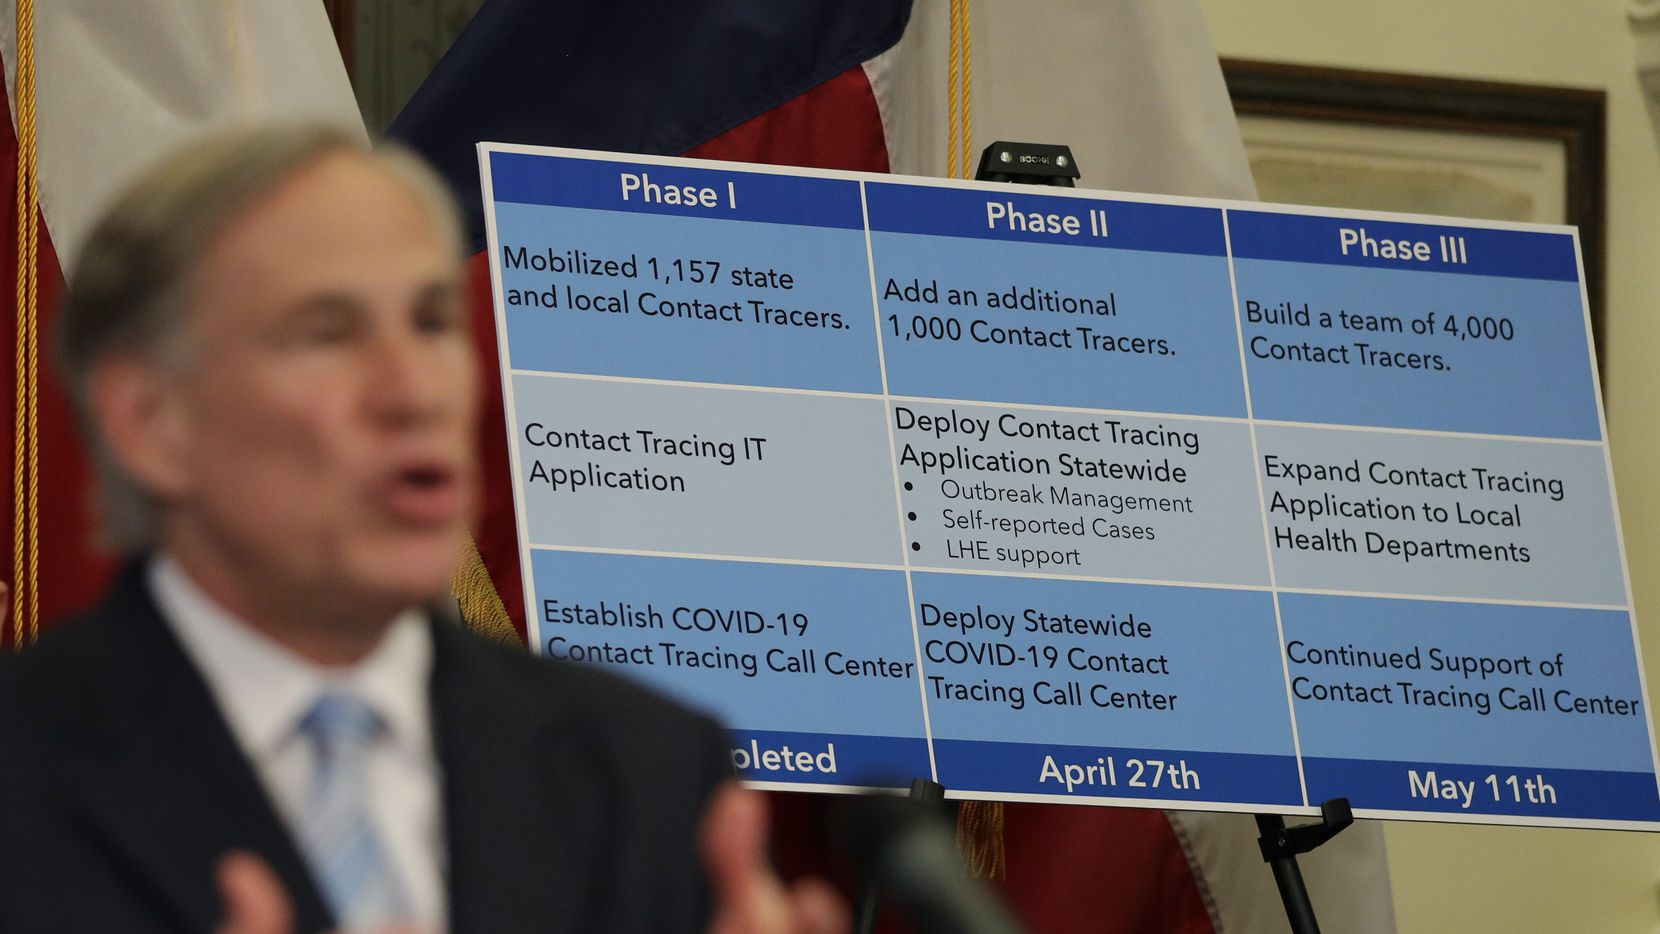 Texas Gov. Greg Abbott uses a display board during a news conference where he announced he would relax some restrictions imposed on some businesses due to the COVID-19 pandemic Monday, April 27, 2020, in Austin. (AP Photo/Eric Gay)